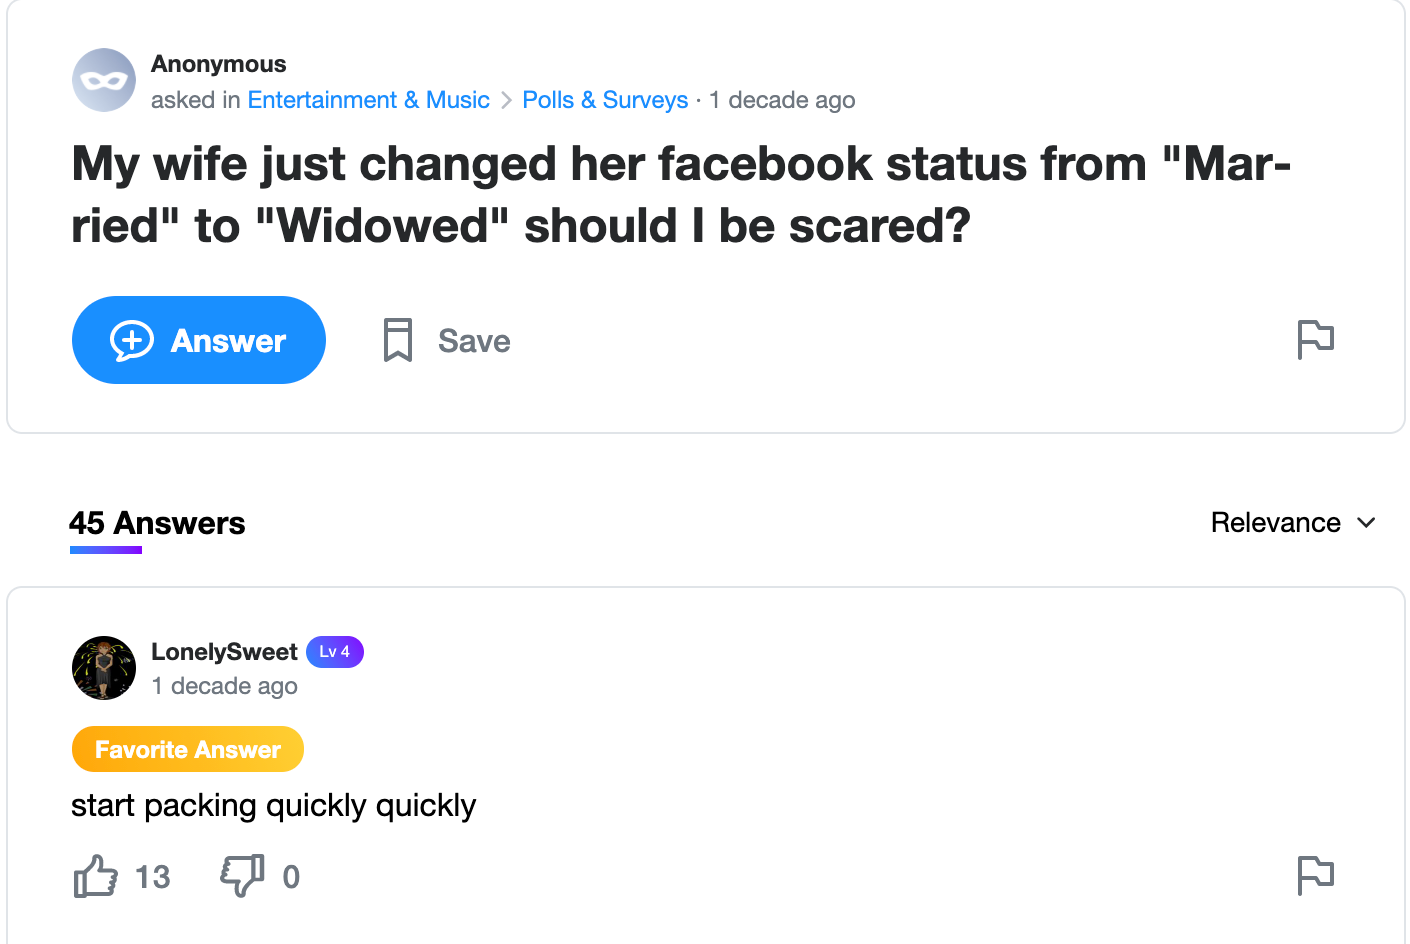 """Screengrab of a Yahoo! user asking """"My wife just changed her facebook status from 'Married' to Widowed', should I be scared?"""" The favorite answer says, """"start packing quickly""""."""